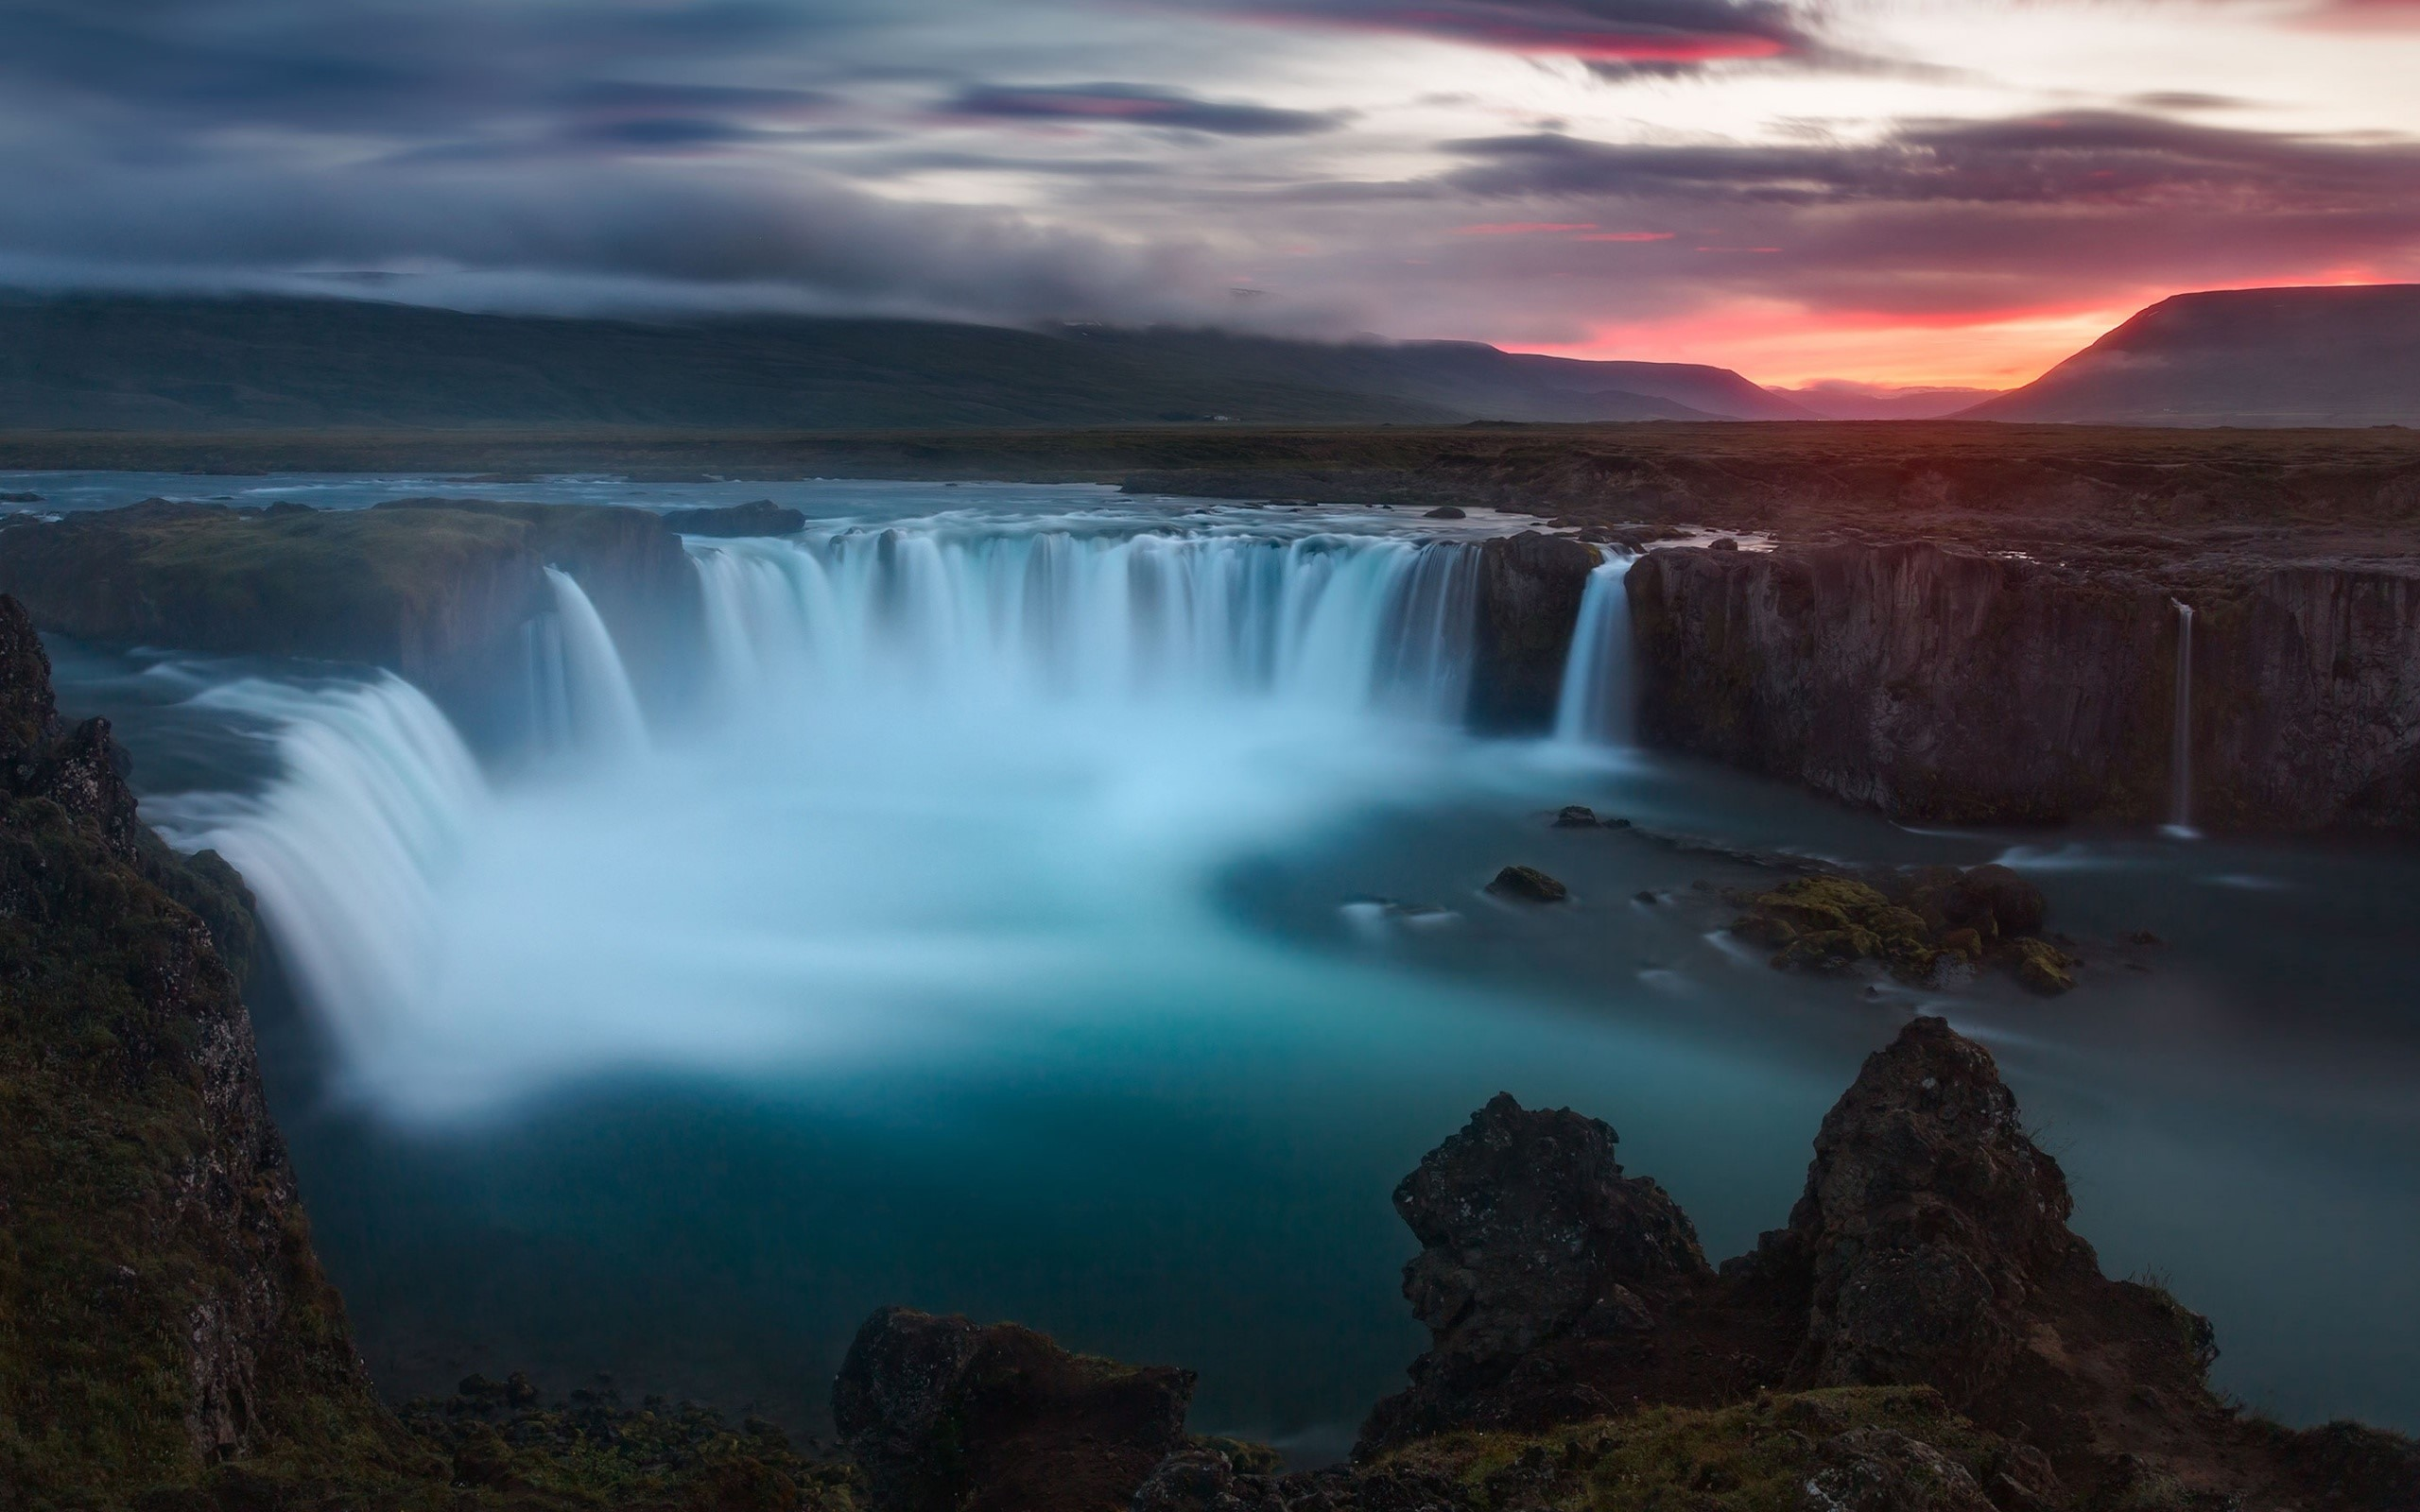 Godafoss Waterfall In Iceland Wallpaper 2k Quad Hd Id2689